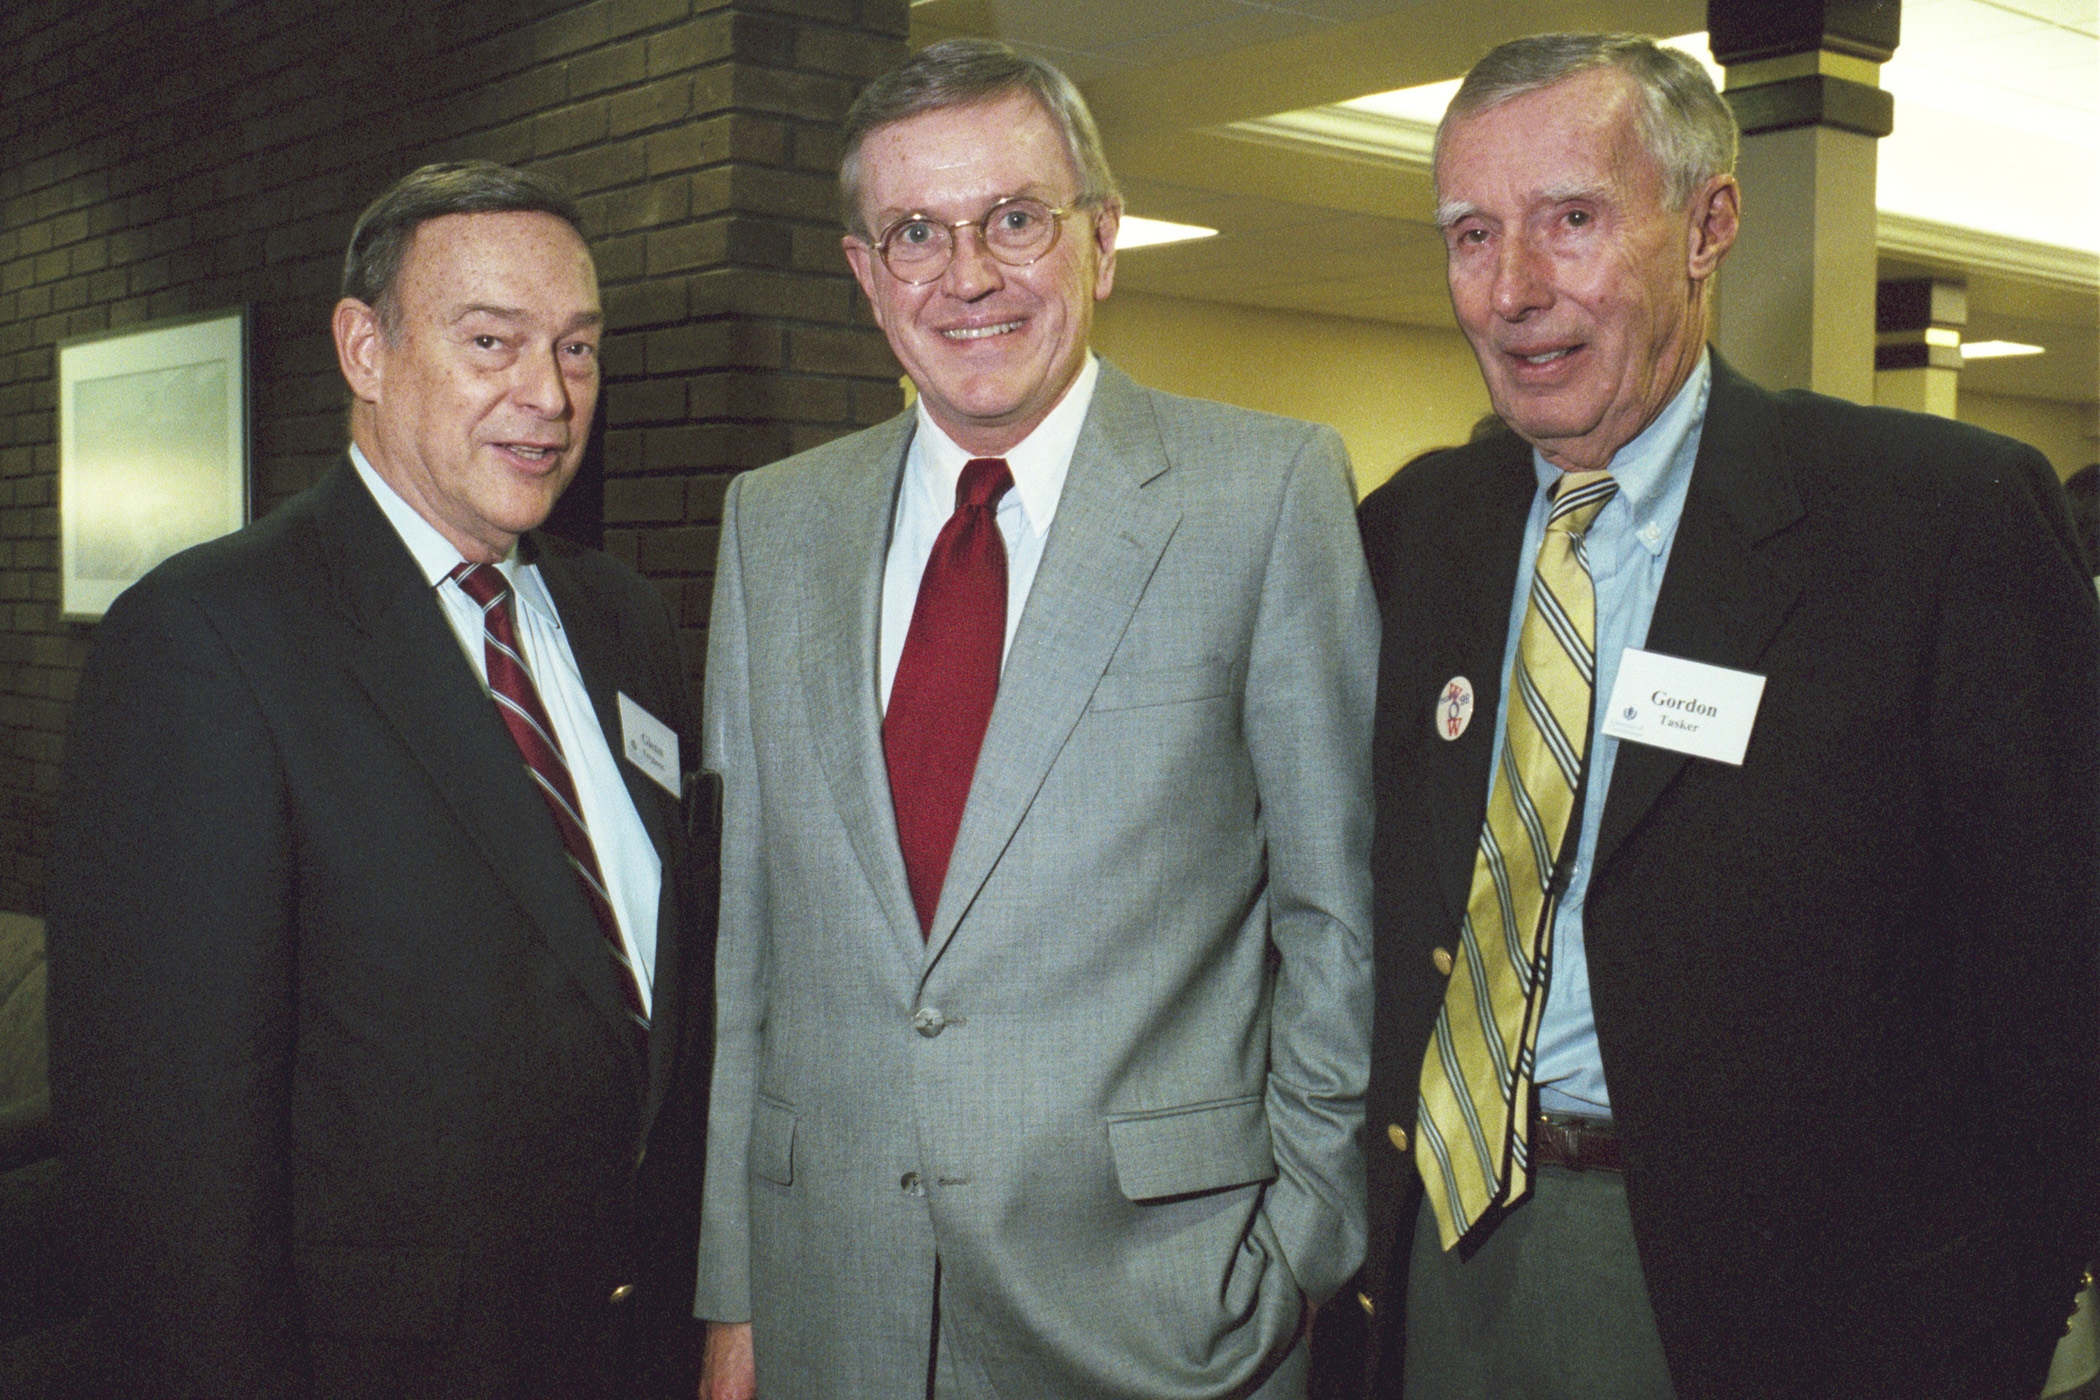 Gordon Tasker, former chairman of the Board of Trustees, right, with former university presidents Philip Austin, center, and Glenn W. Ferguson, at the dedication of the Tasker Building in 1998. (Peter Morenus/UConn File Photo)